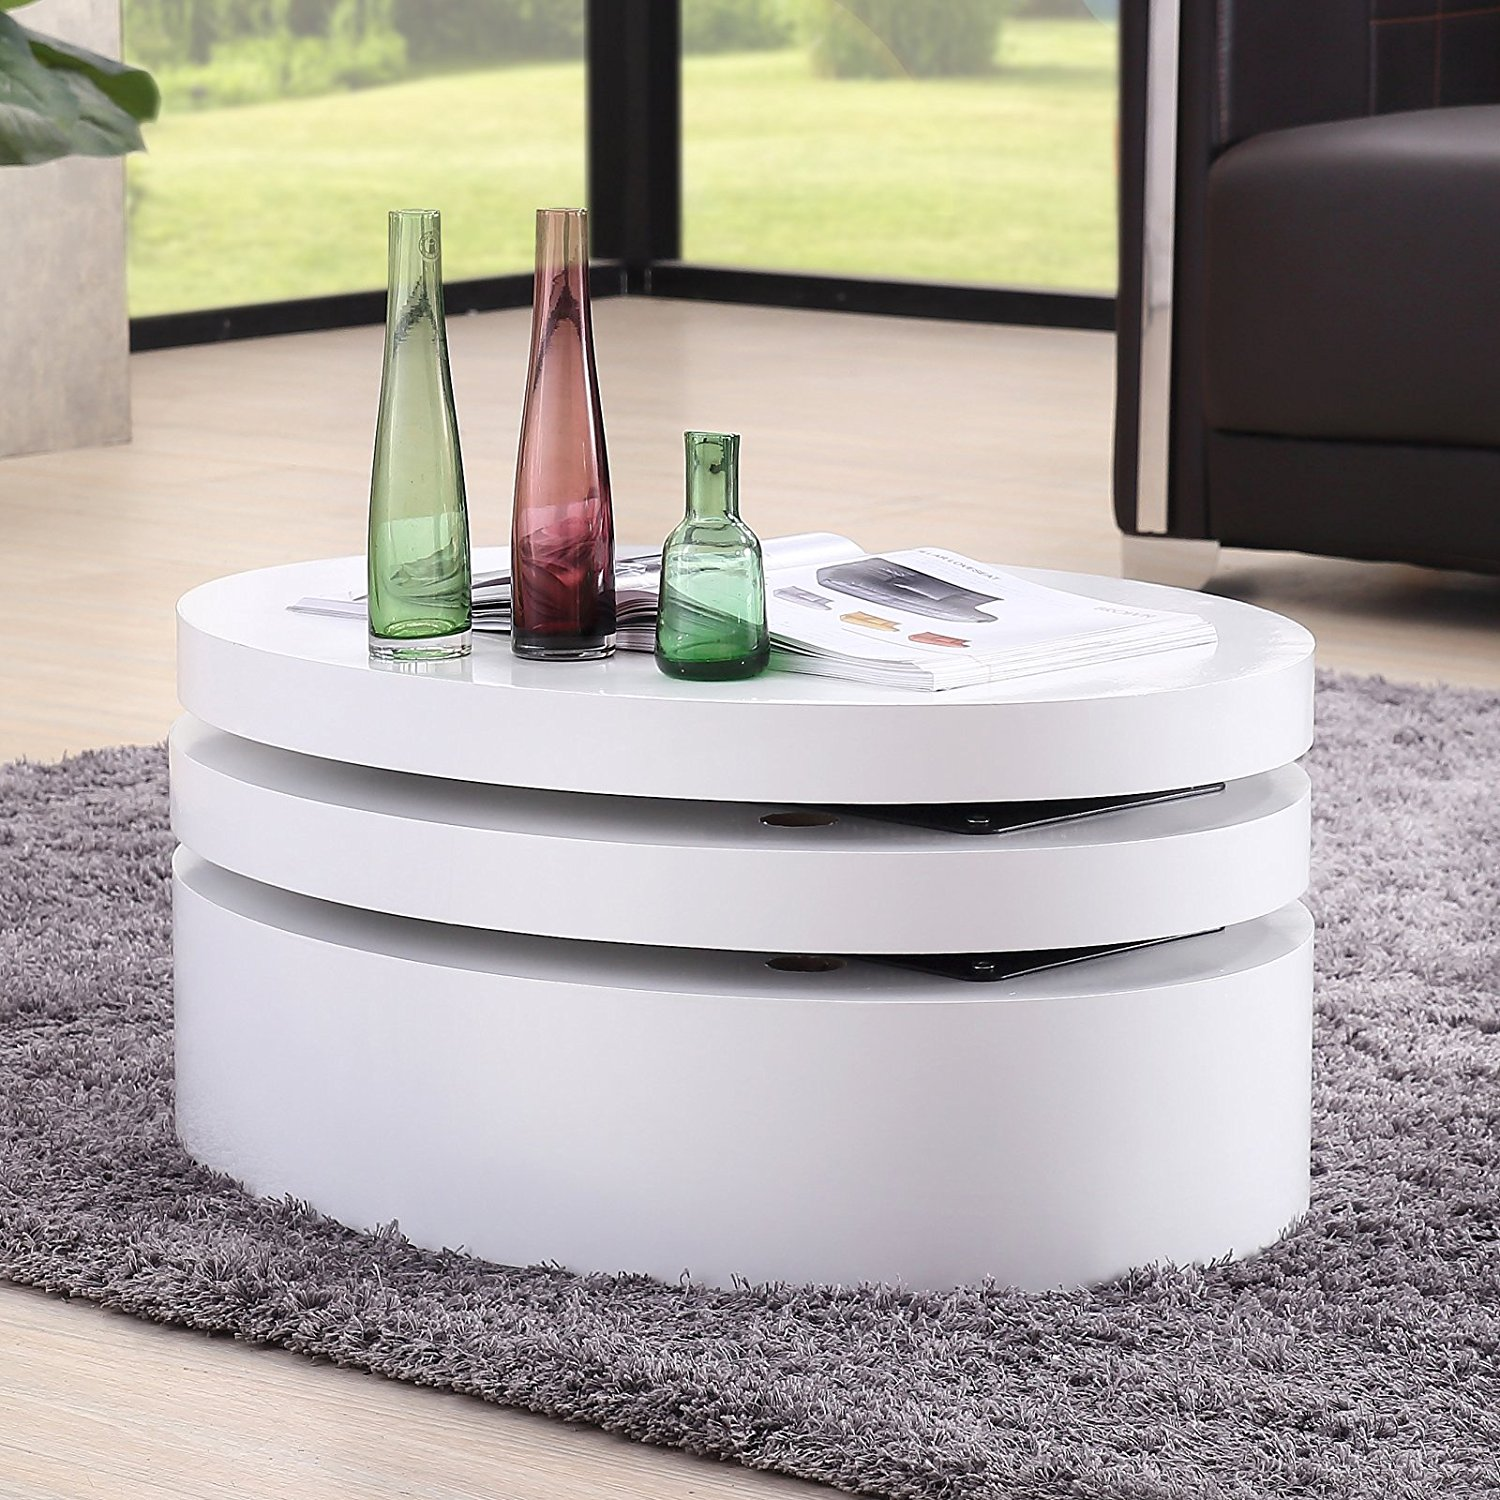 Uenjoy White Round Coffee Table Rotating Contemporary Modern Living Room Furniture